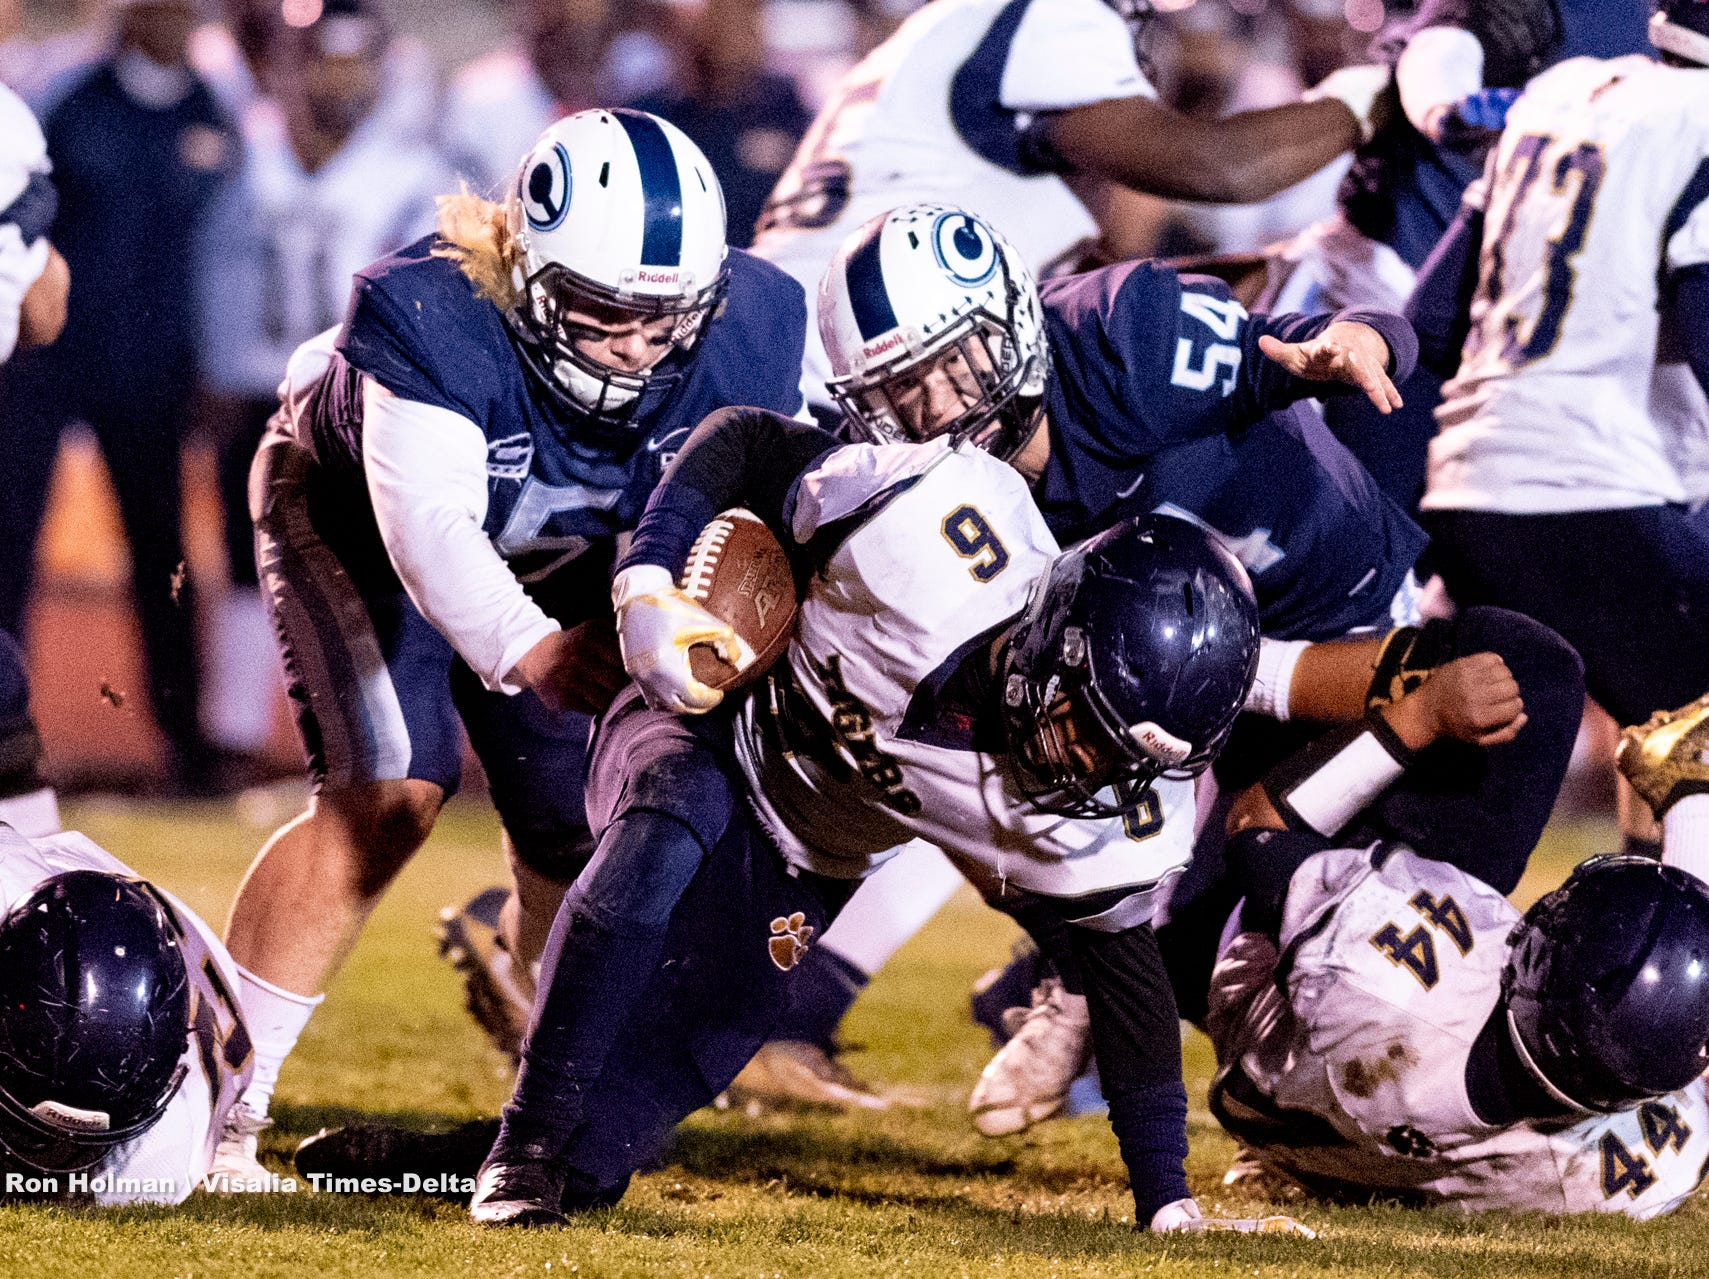 Central Valley Christian hosts Morse in a CIF SoCal Regional Championship Bowl Game on Friday, November 30, 2018.